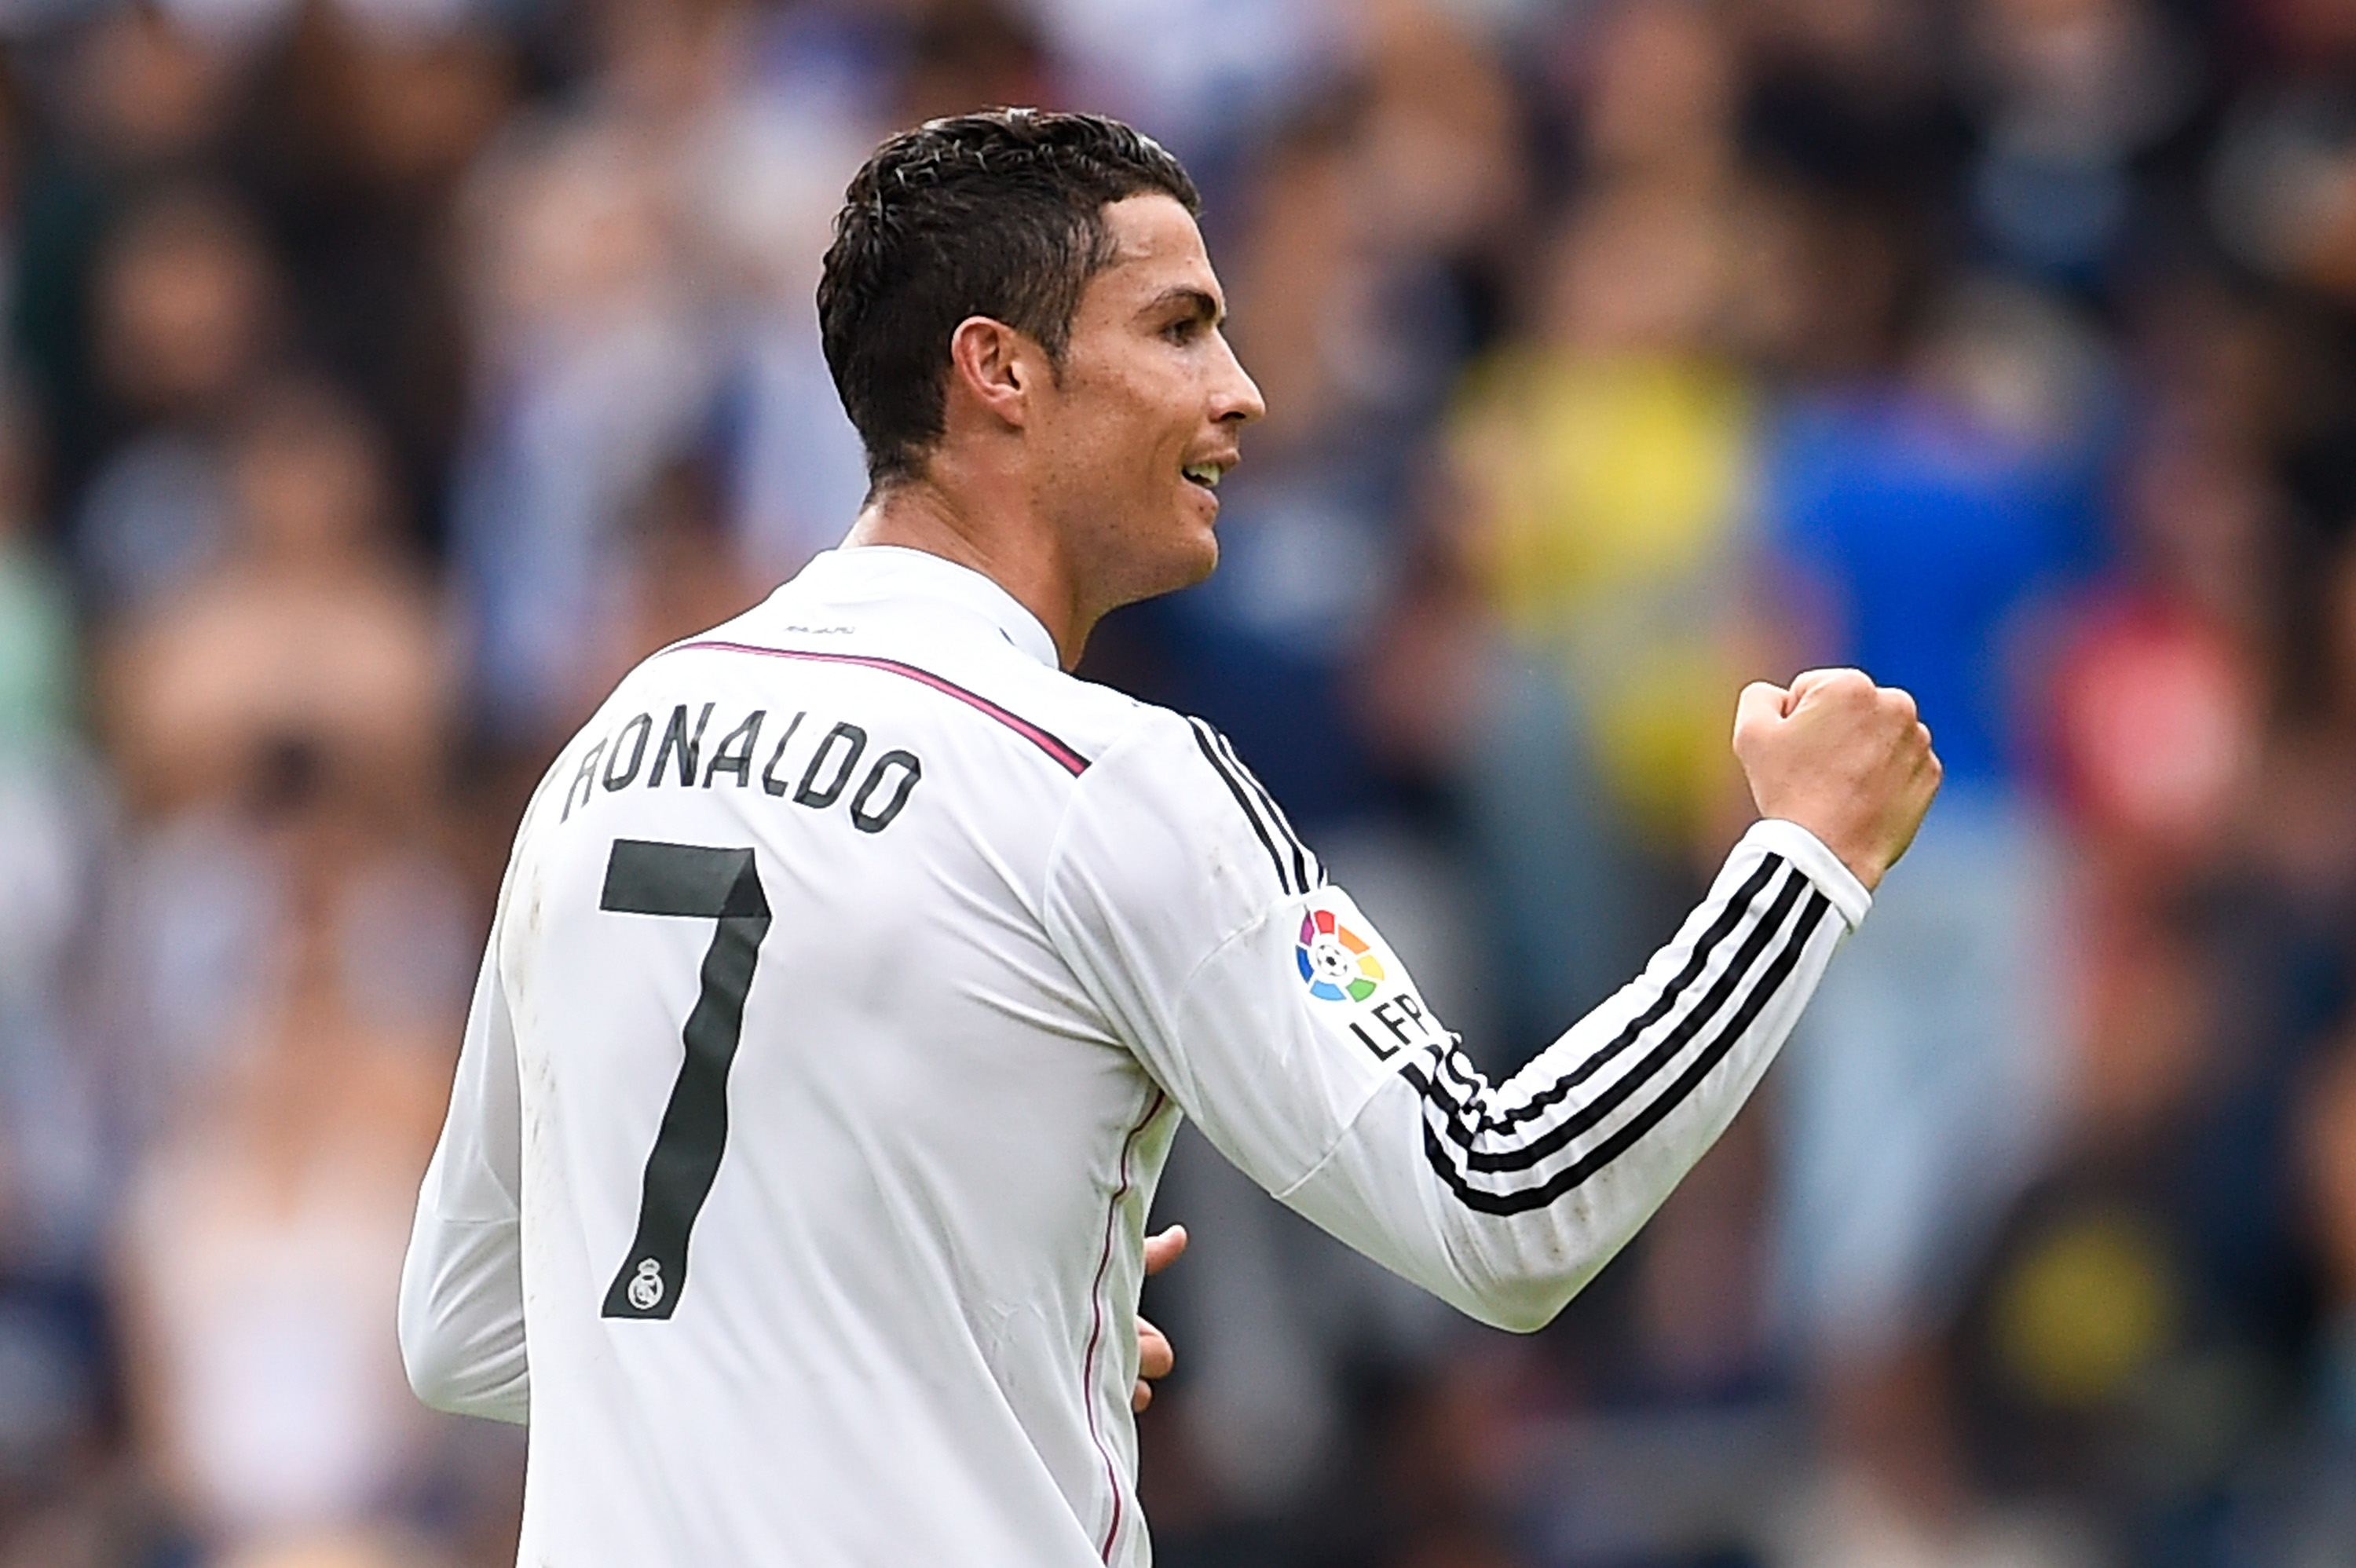 Real Madrid Champions League History, Real Madrid champions league,Real Madrid Champions League finals, Real Madrid Champions League wins, Real Madrid Champions League appearances, most champions league wins, most champions league finals